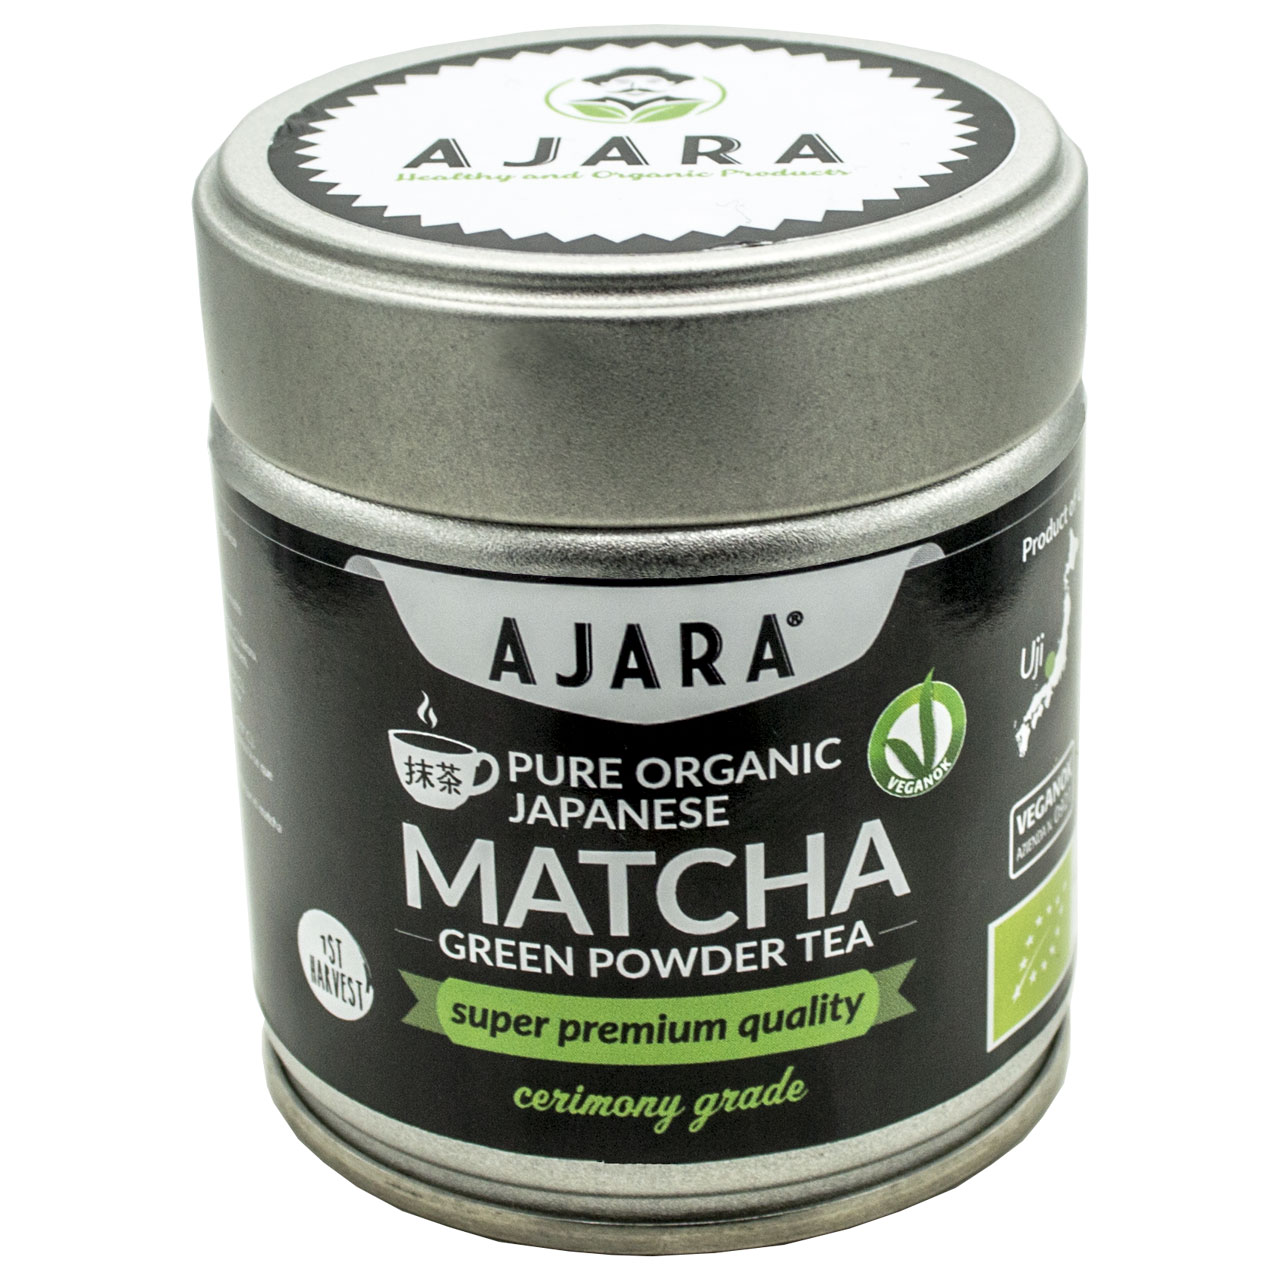 Zeremonieller Matcha-Tee in Pulverform